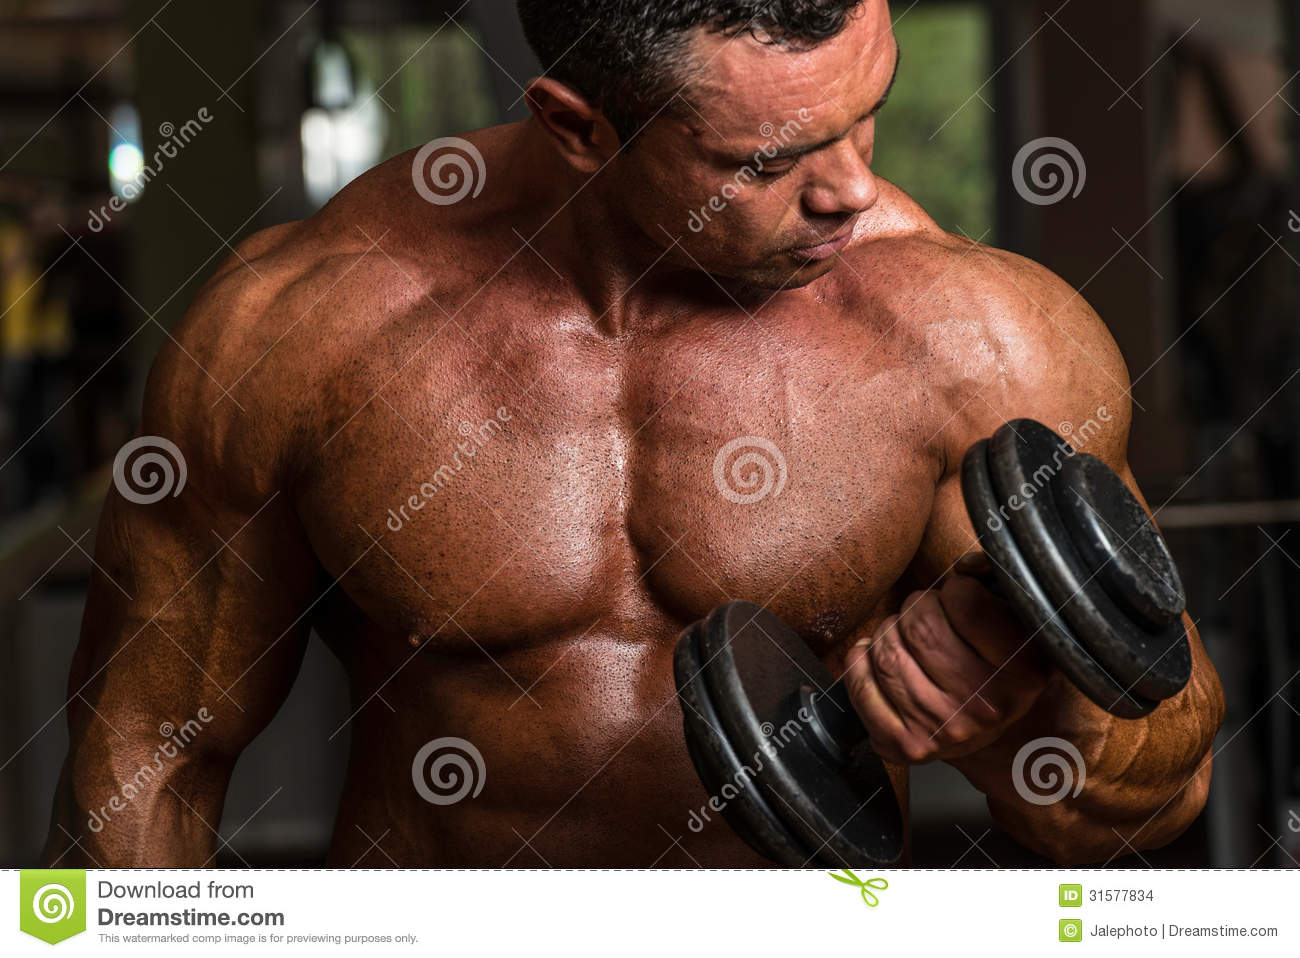 Biceps Exercises For Men - Viewing Gallery